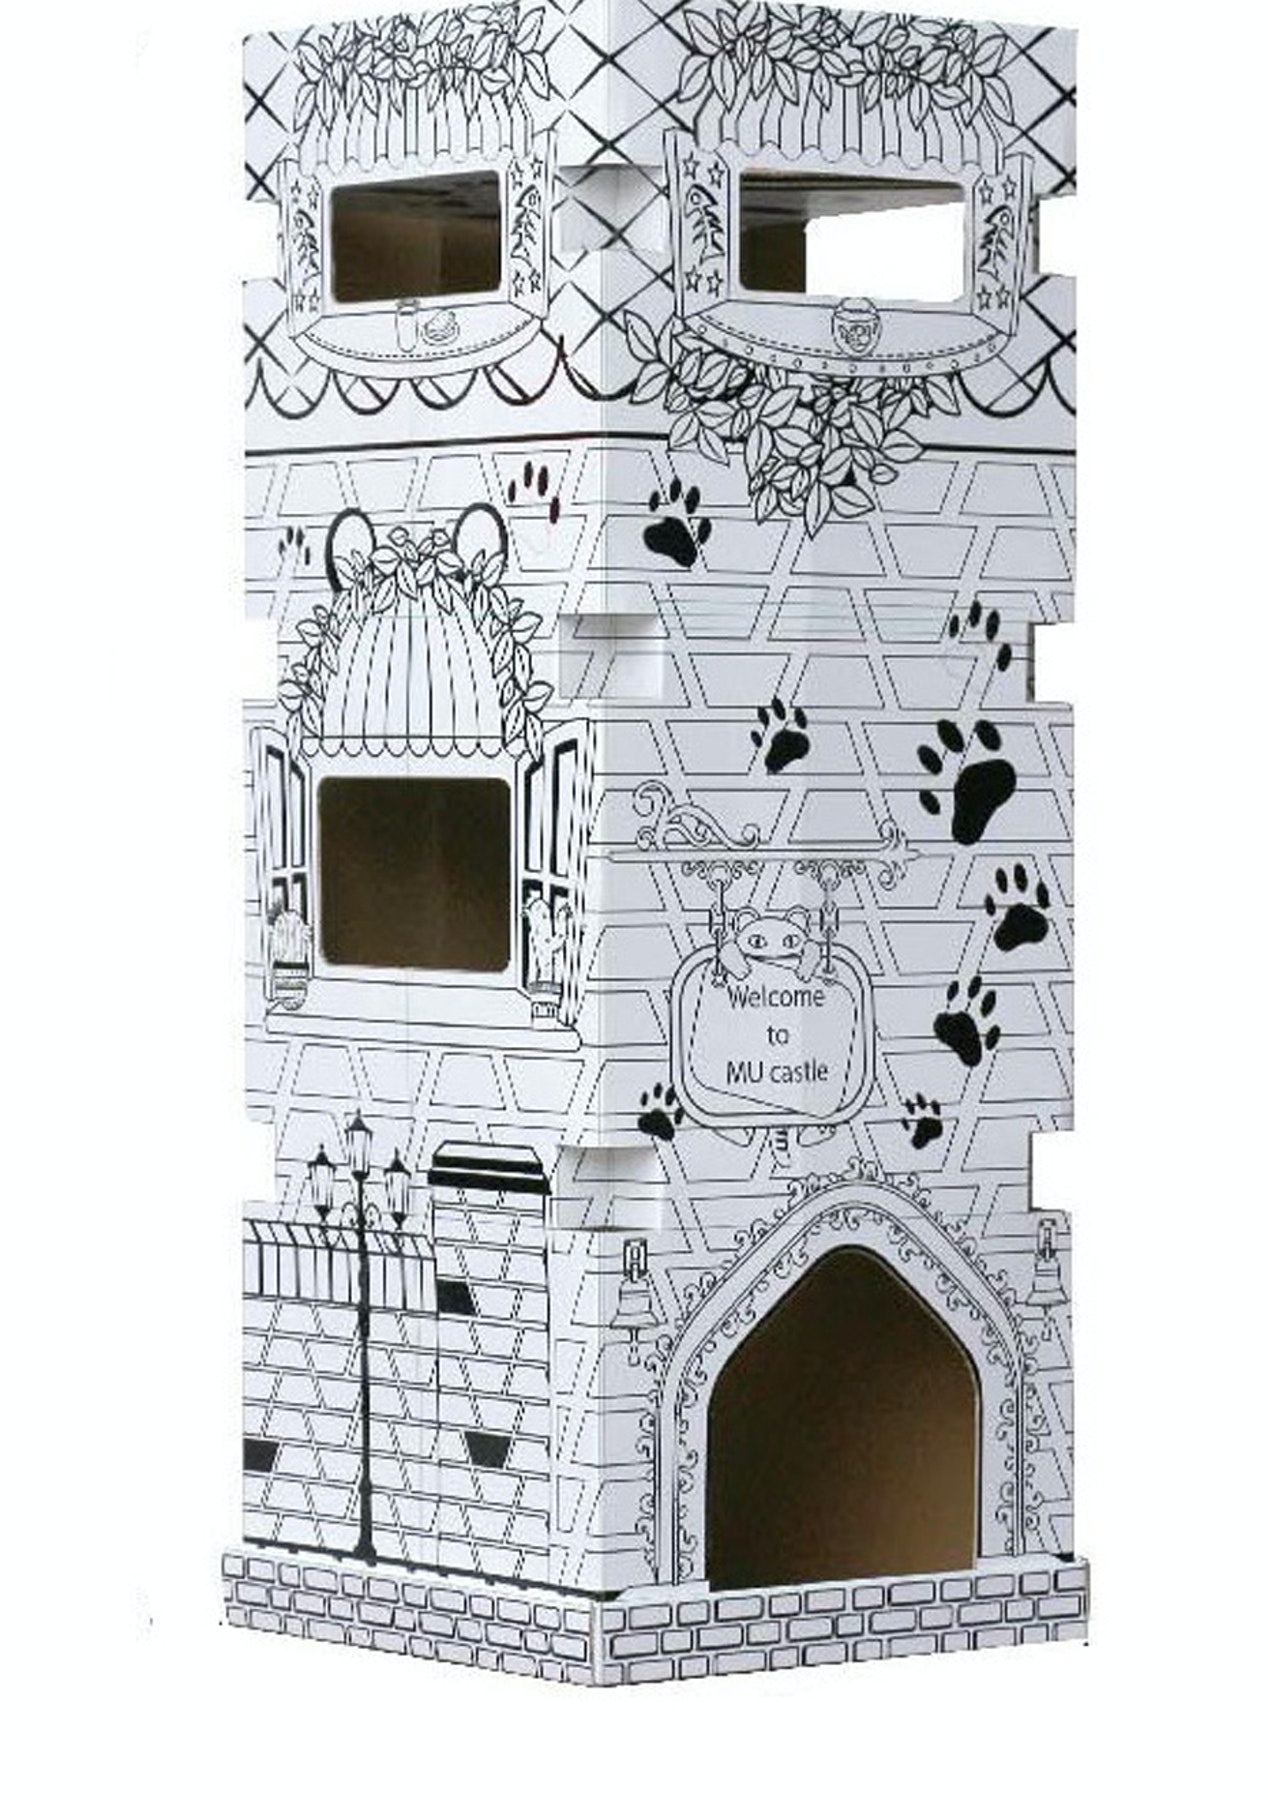 Coloring Cardboard Playhouse - The Cat Castle - Kids Holiday Boredom ...